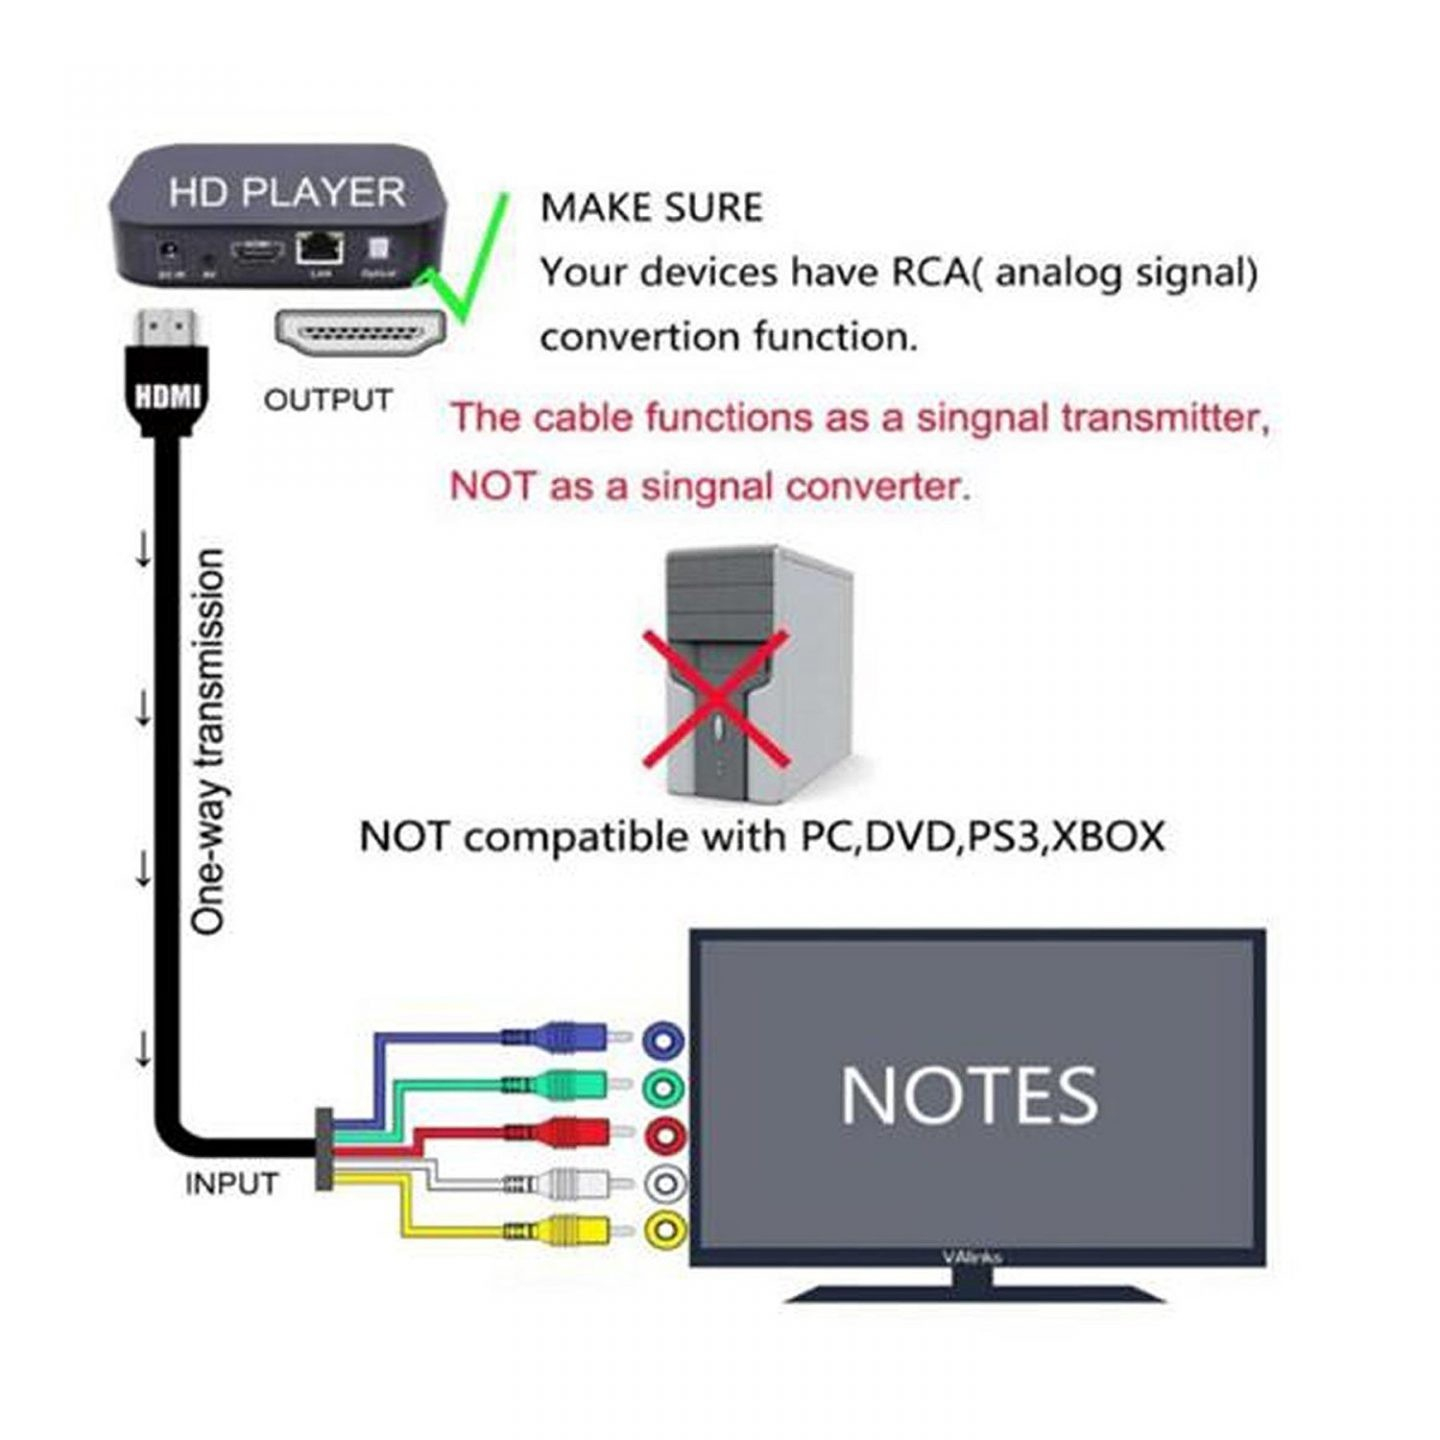 Fascinating Micro Usb Wire Diagram Gallery Binvm Iphone Cord Wiring - Wiring Diagram For Micro Usb Charge Sync Cable